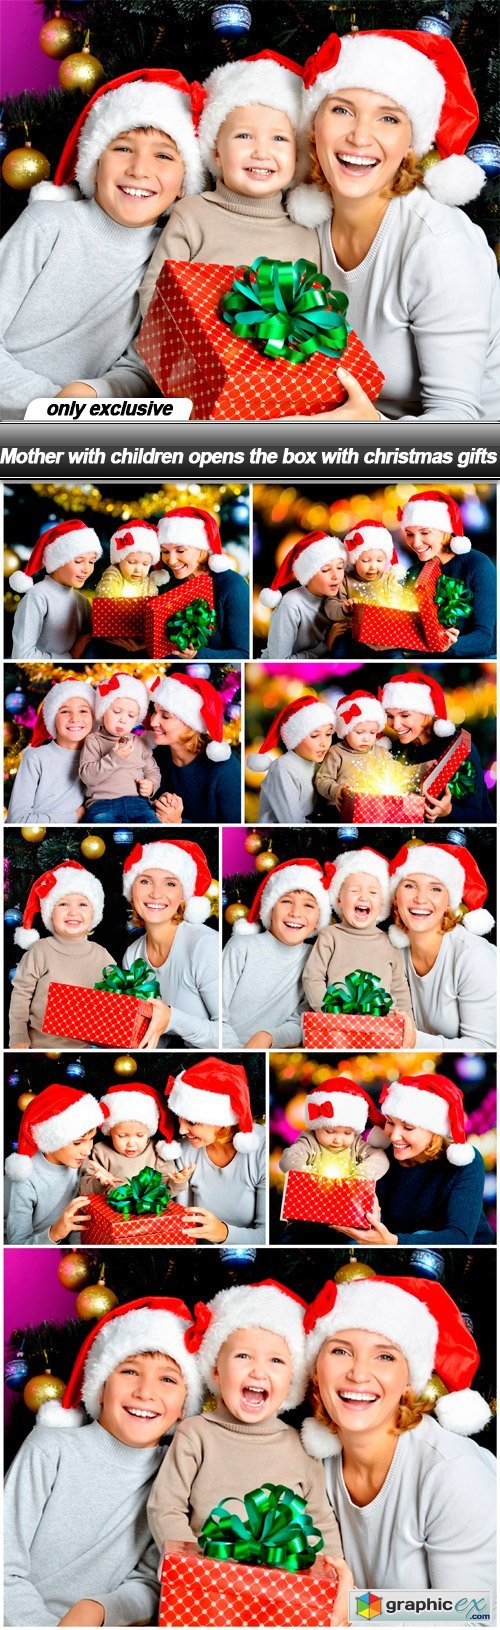 Mother with children opens the box with christmas gifts - 10 UHQ JPEG